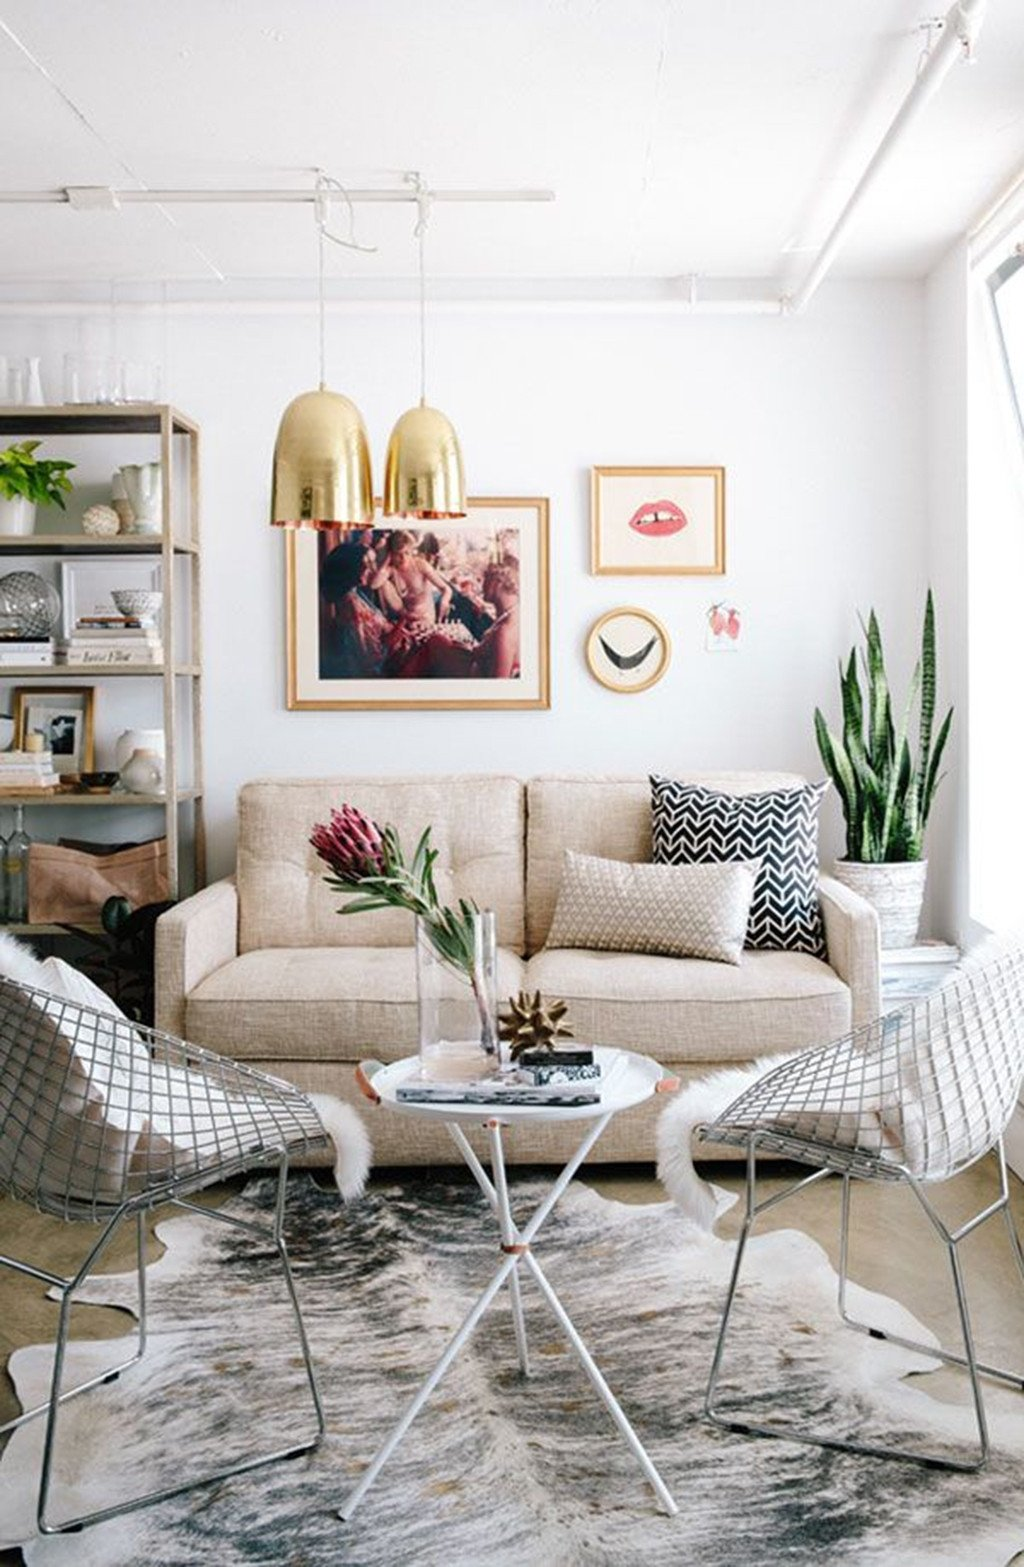 10 Fashionable Design Ideas For Small Living Rooms 50 best small living room design ideas for 2018 14 2020